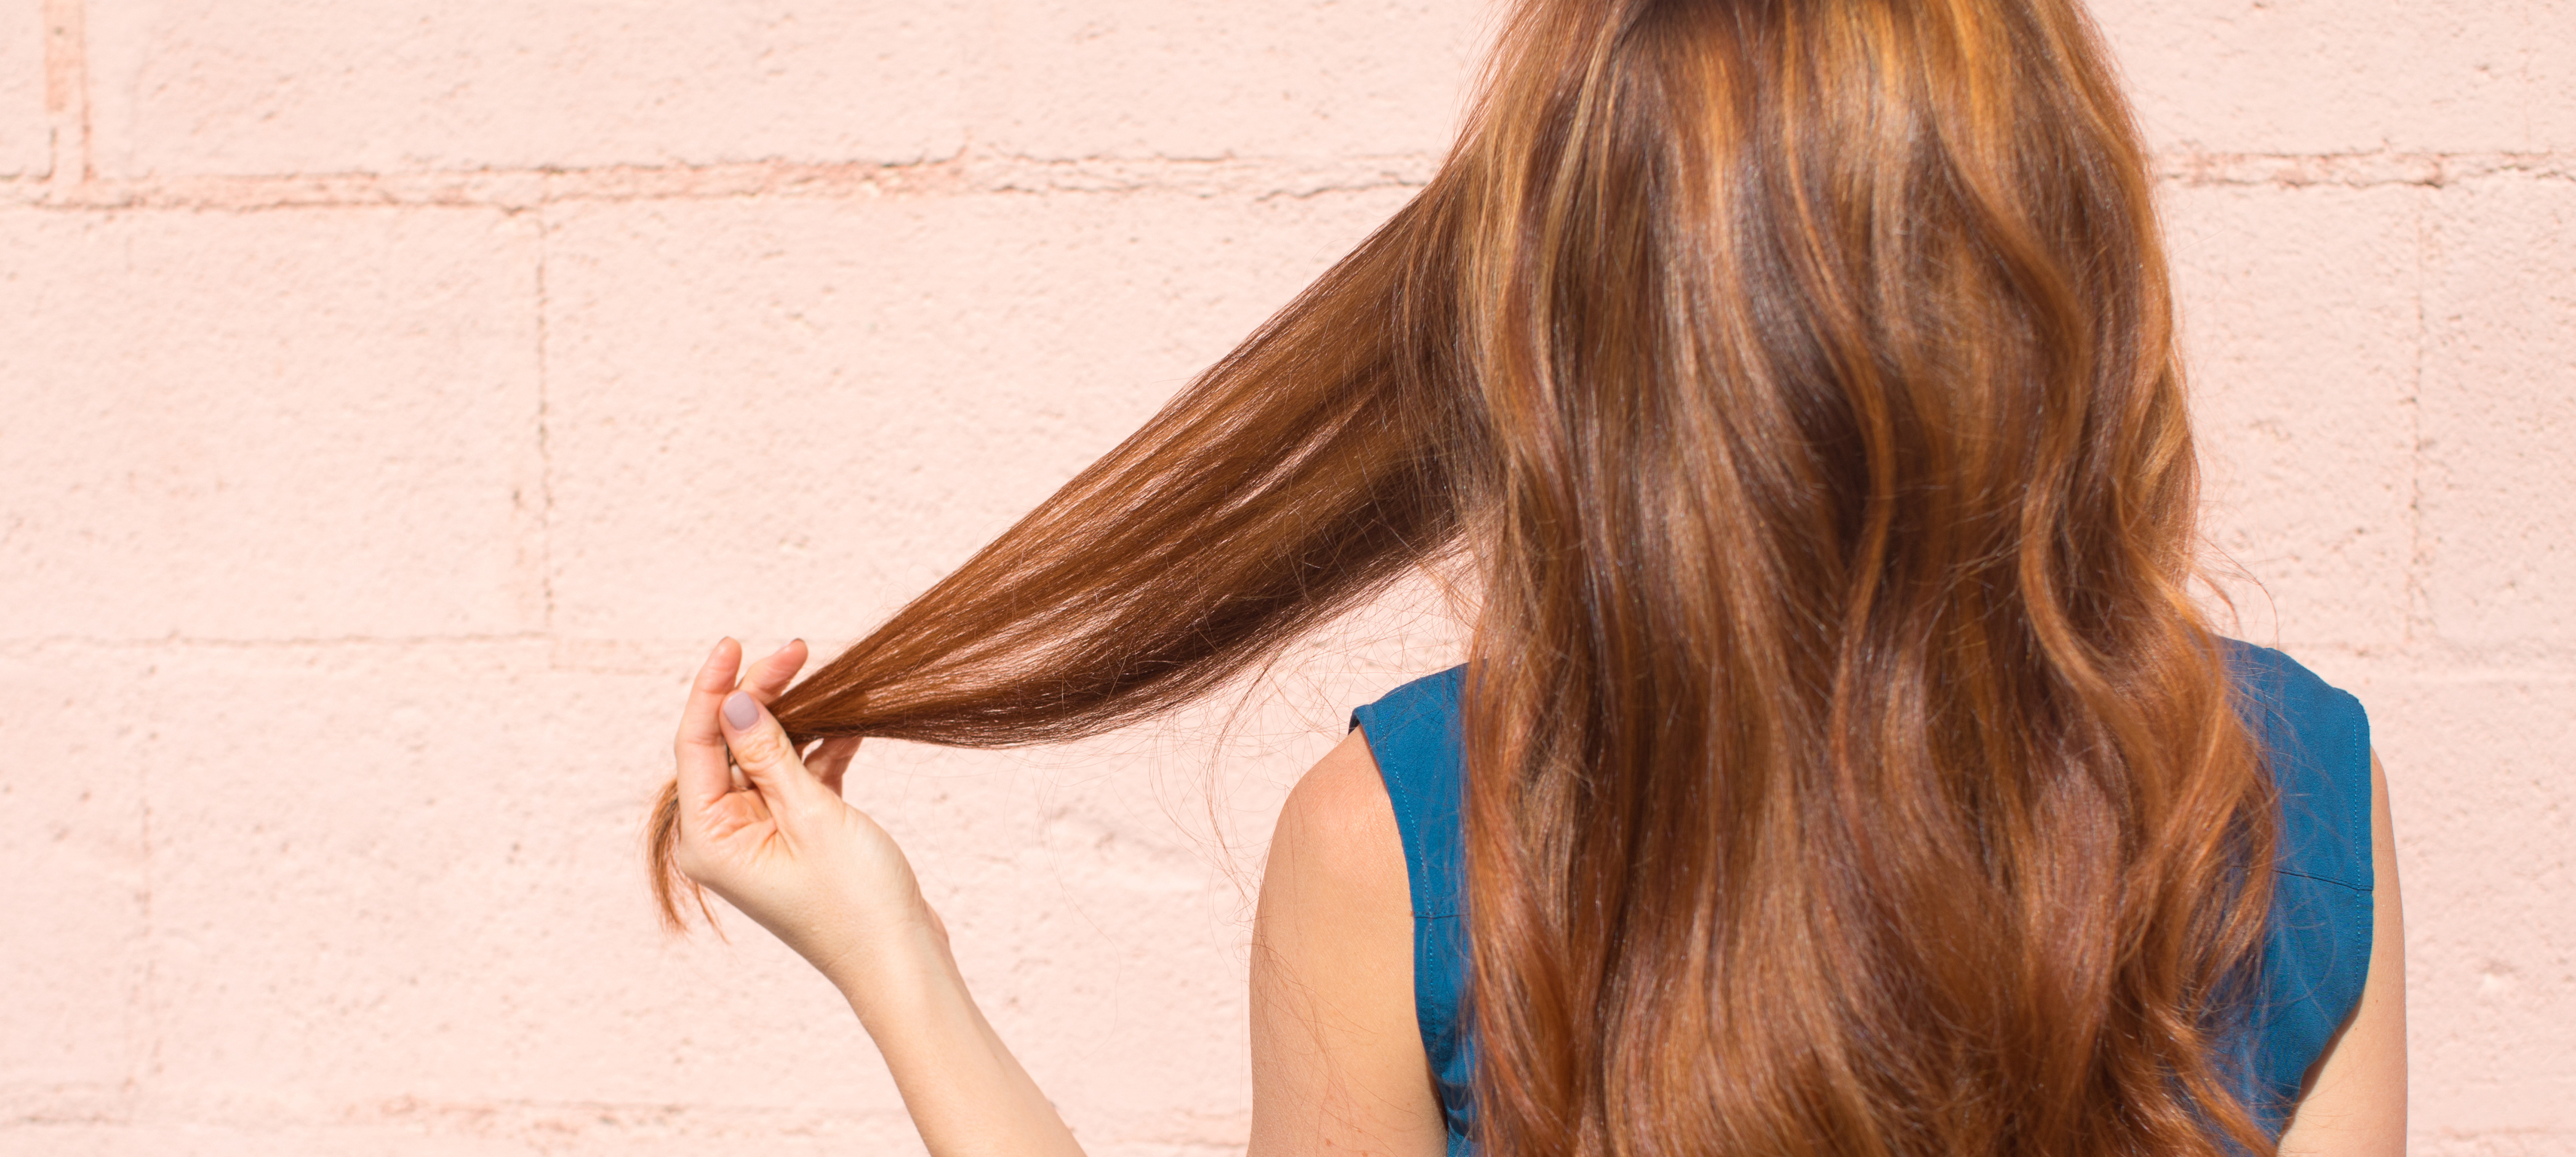 How To Care For Your Highlighted Hair